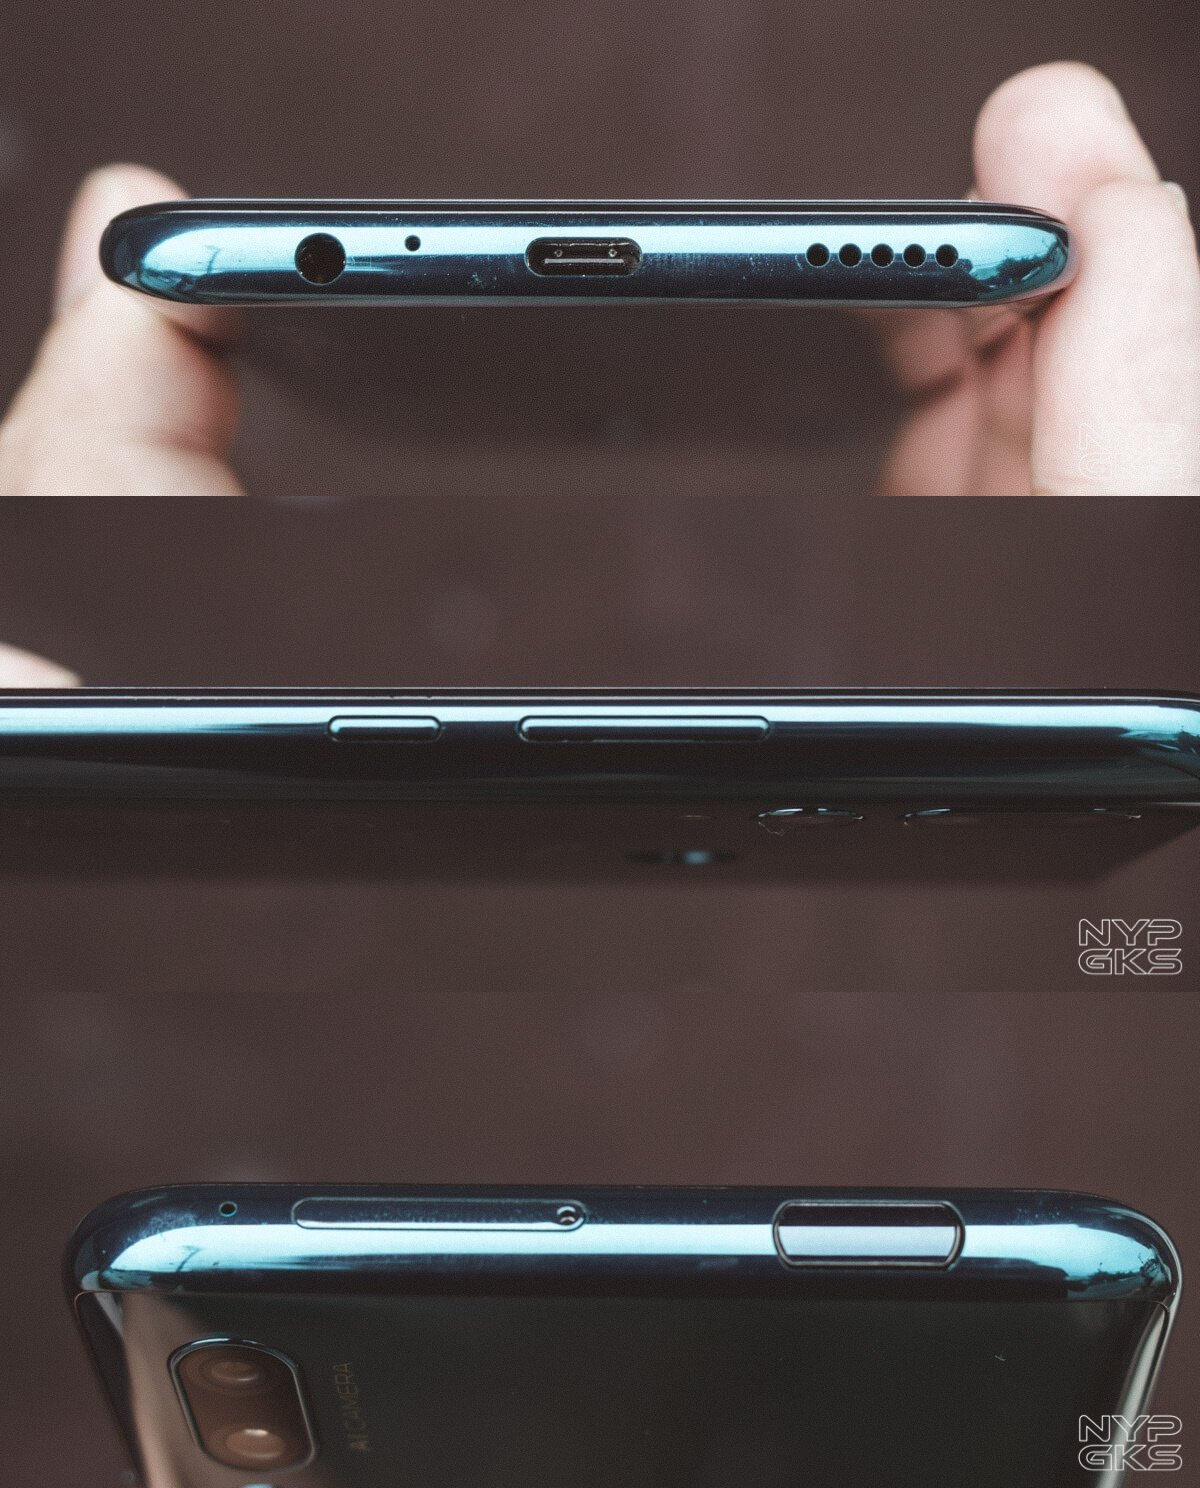 Huawei-Y9-Prime-2019-buttons